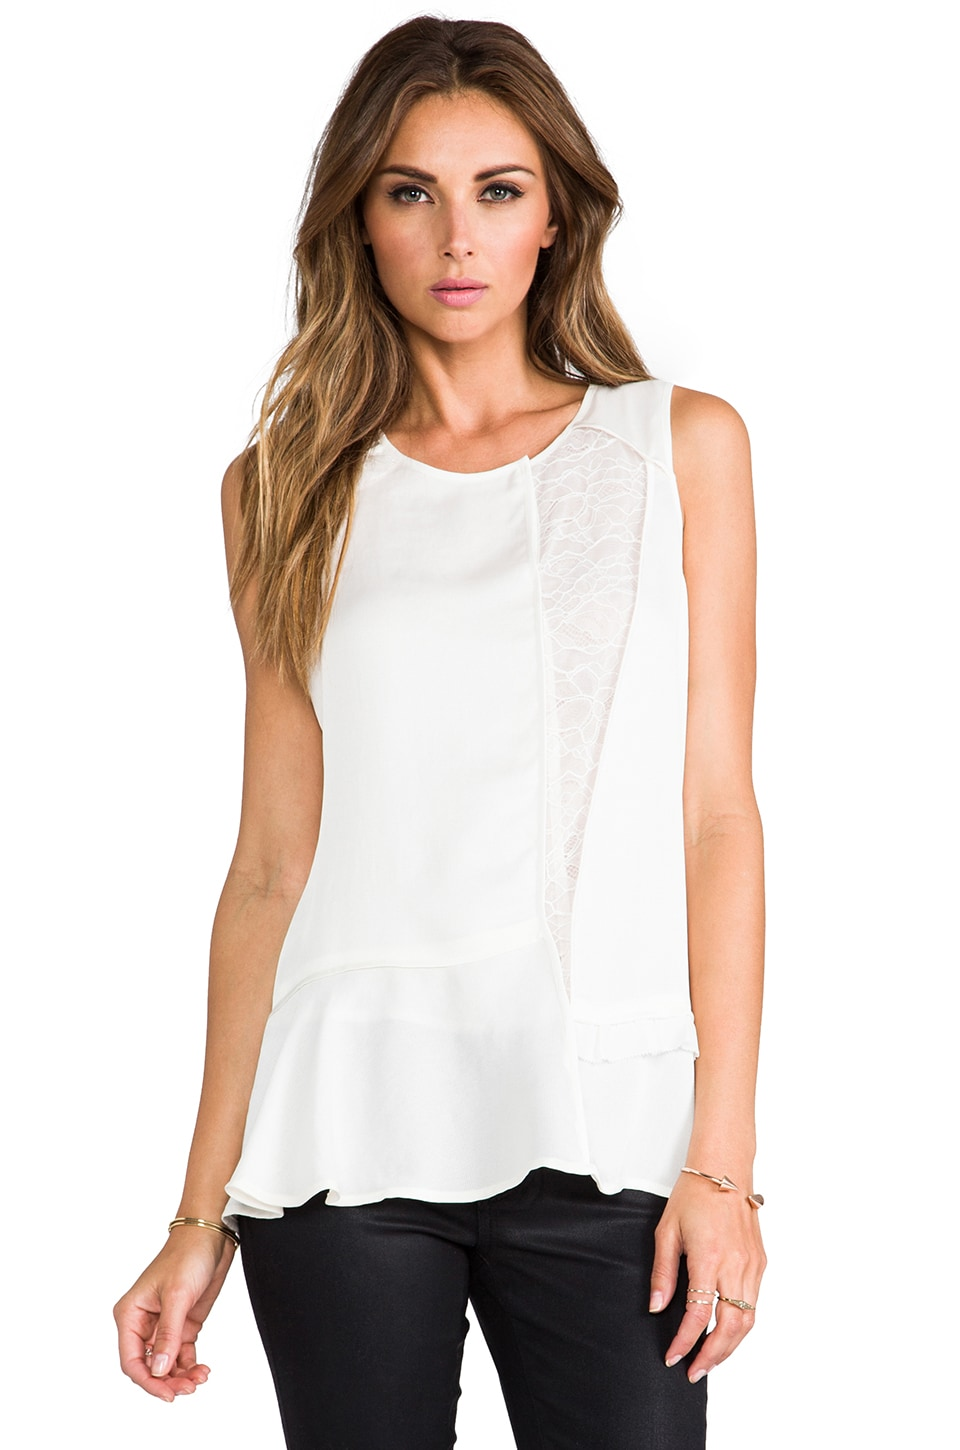 Marc by Marc Jacobs Victoria Lace Top in Whisper White